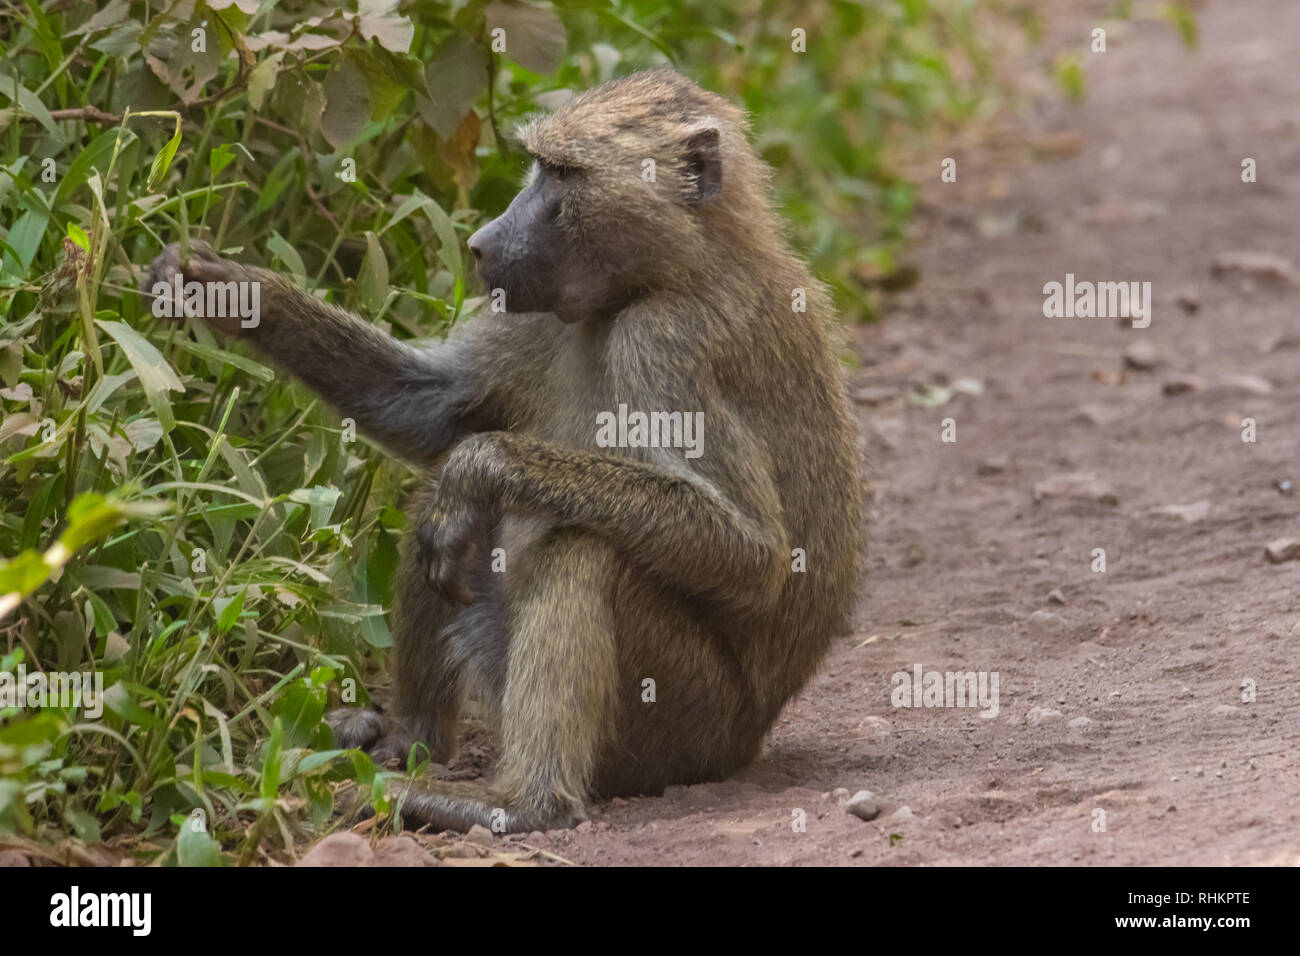 Baboon eating grass - Stock Image